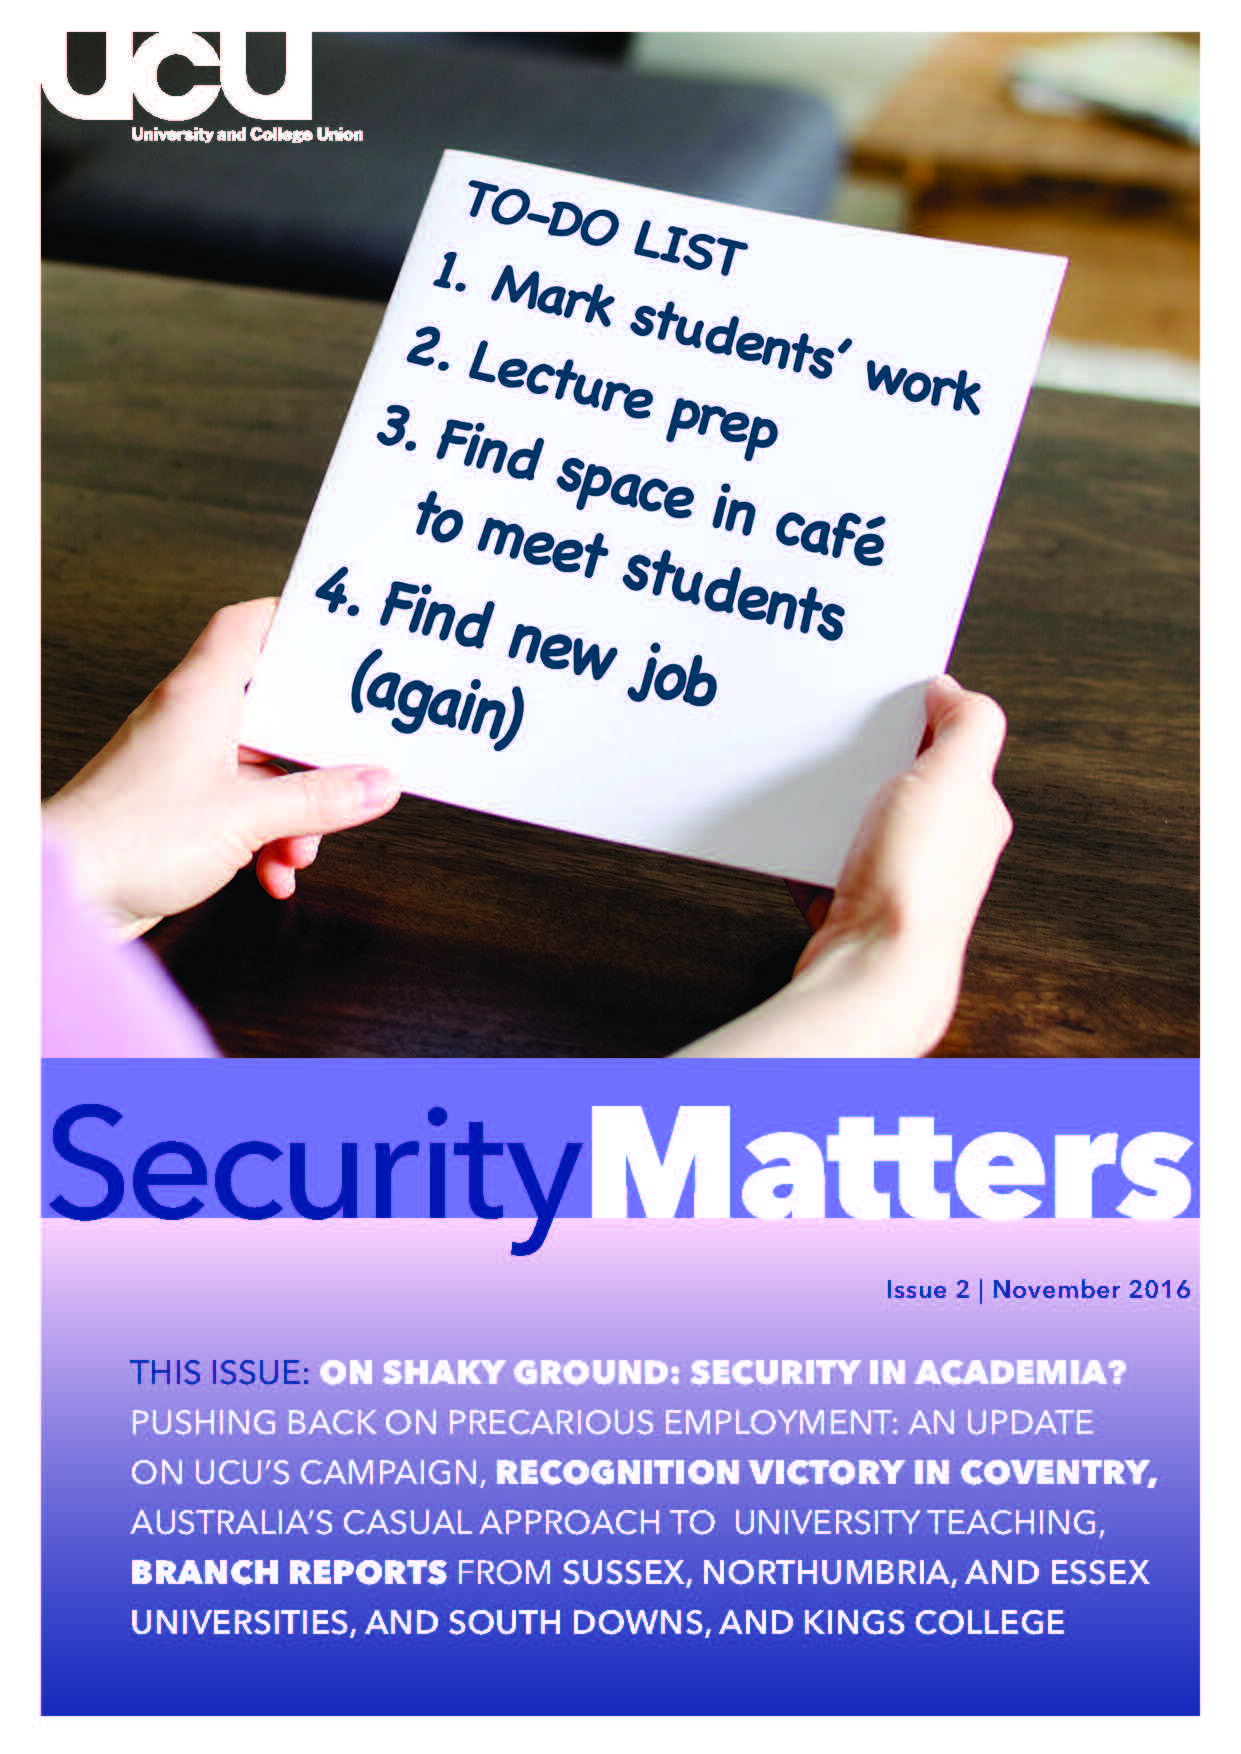 ucu_securitymatters_2_nov16_1_page_01